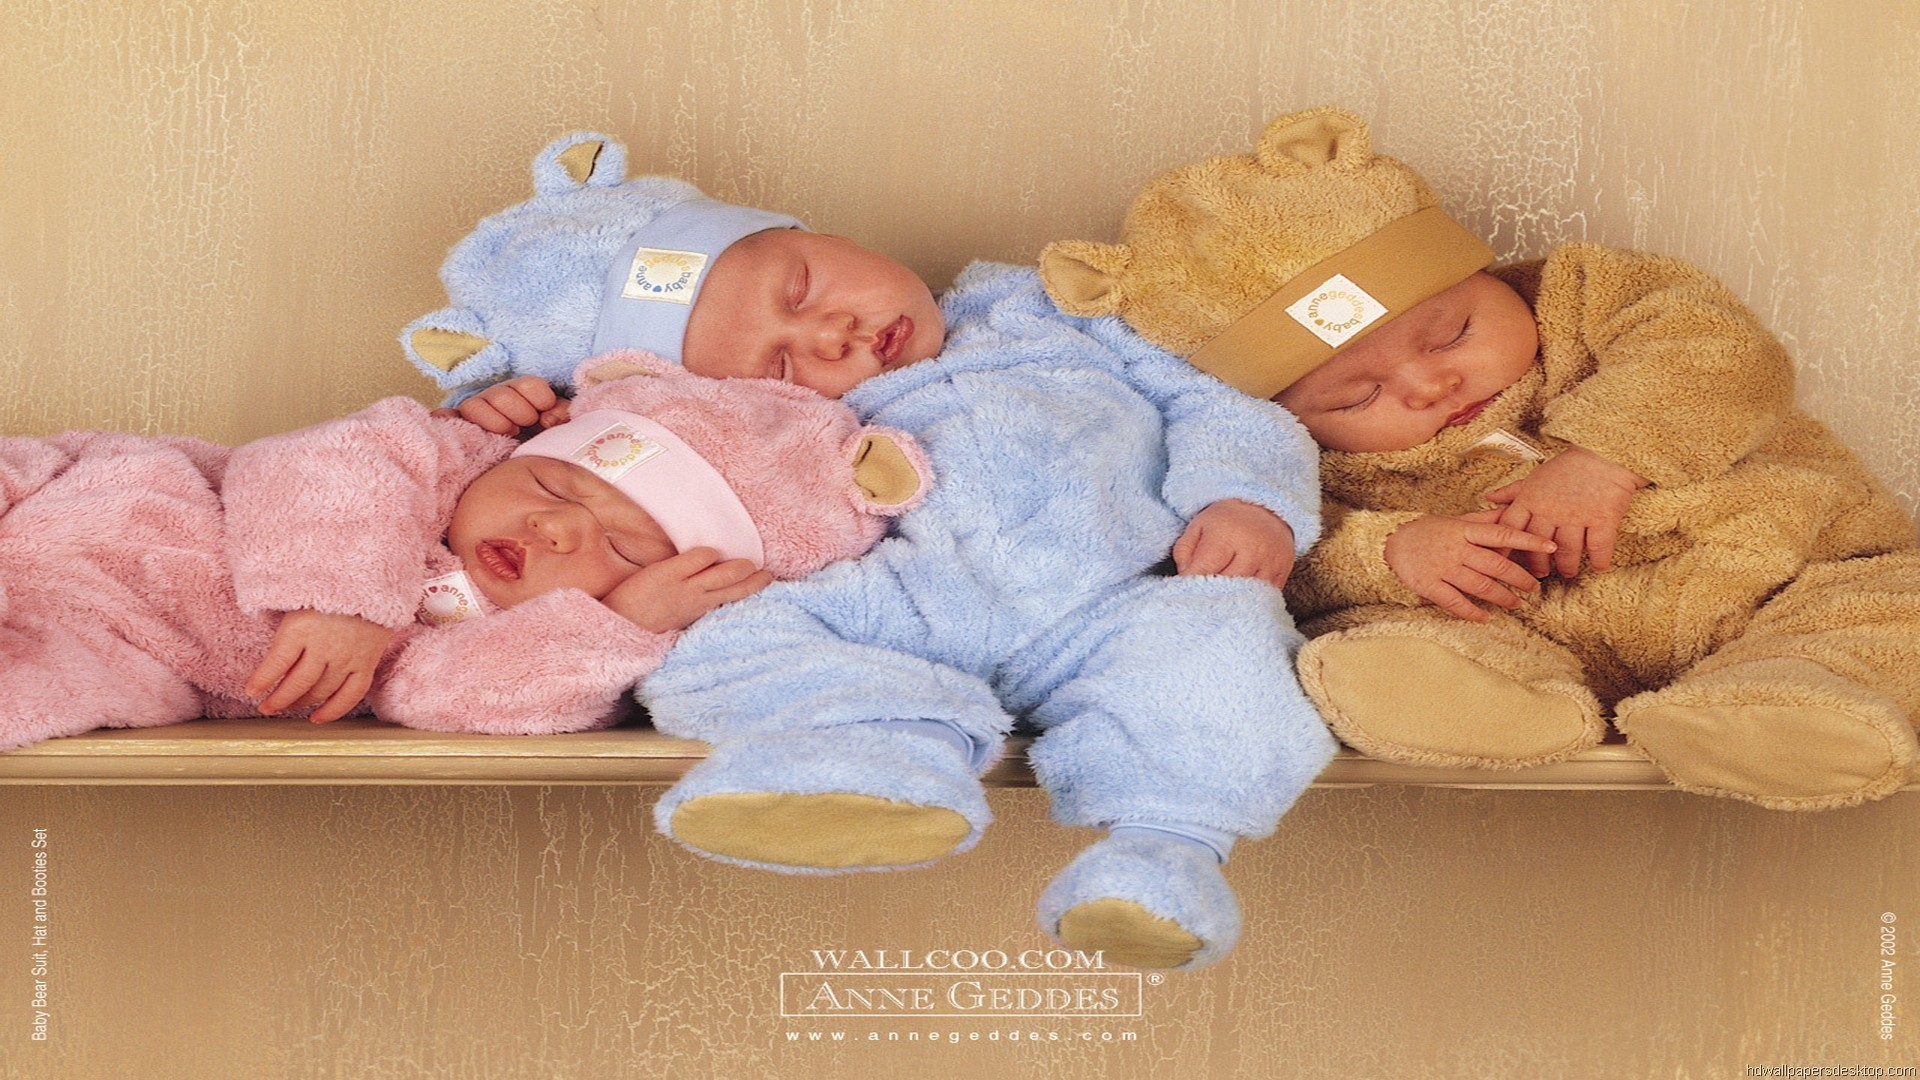 Cute Babies Wallpapers For Facebook Cover Photo Anne Geddes Christmas Babies Wallpaper 64 Images